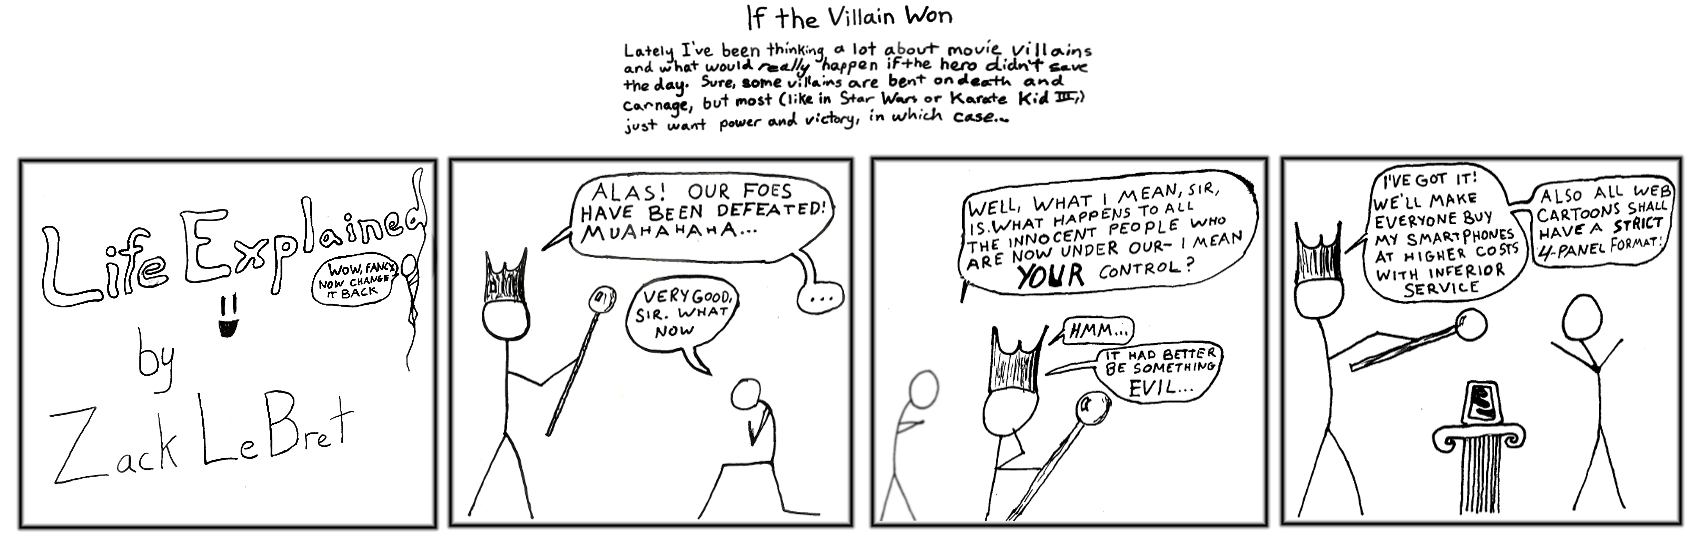 If the Villain Won